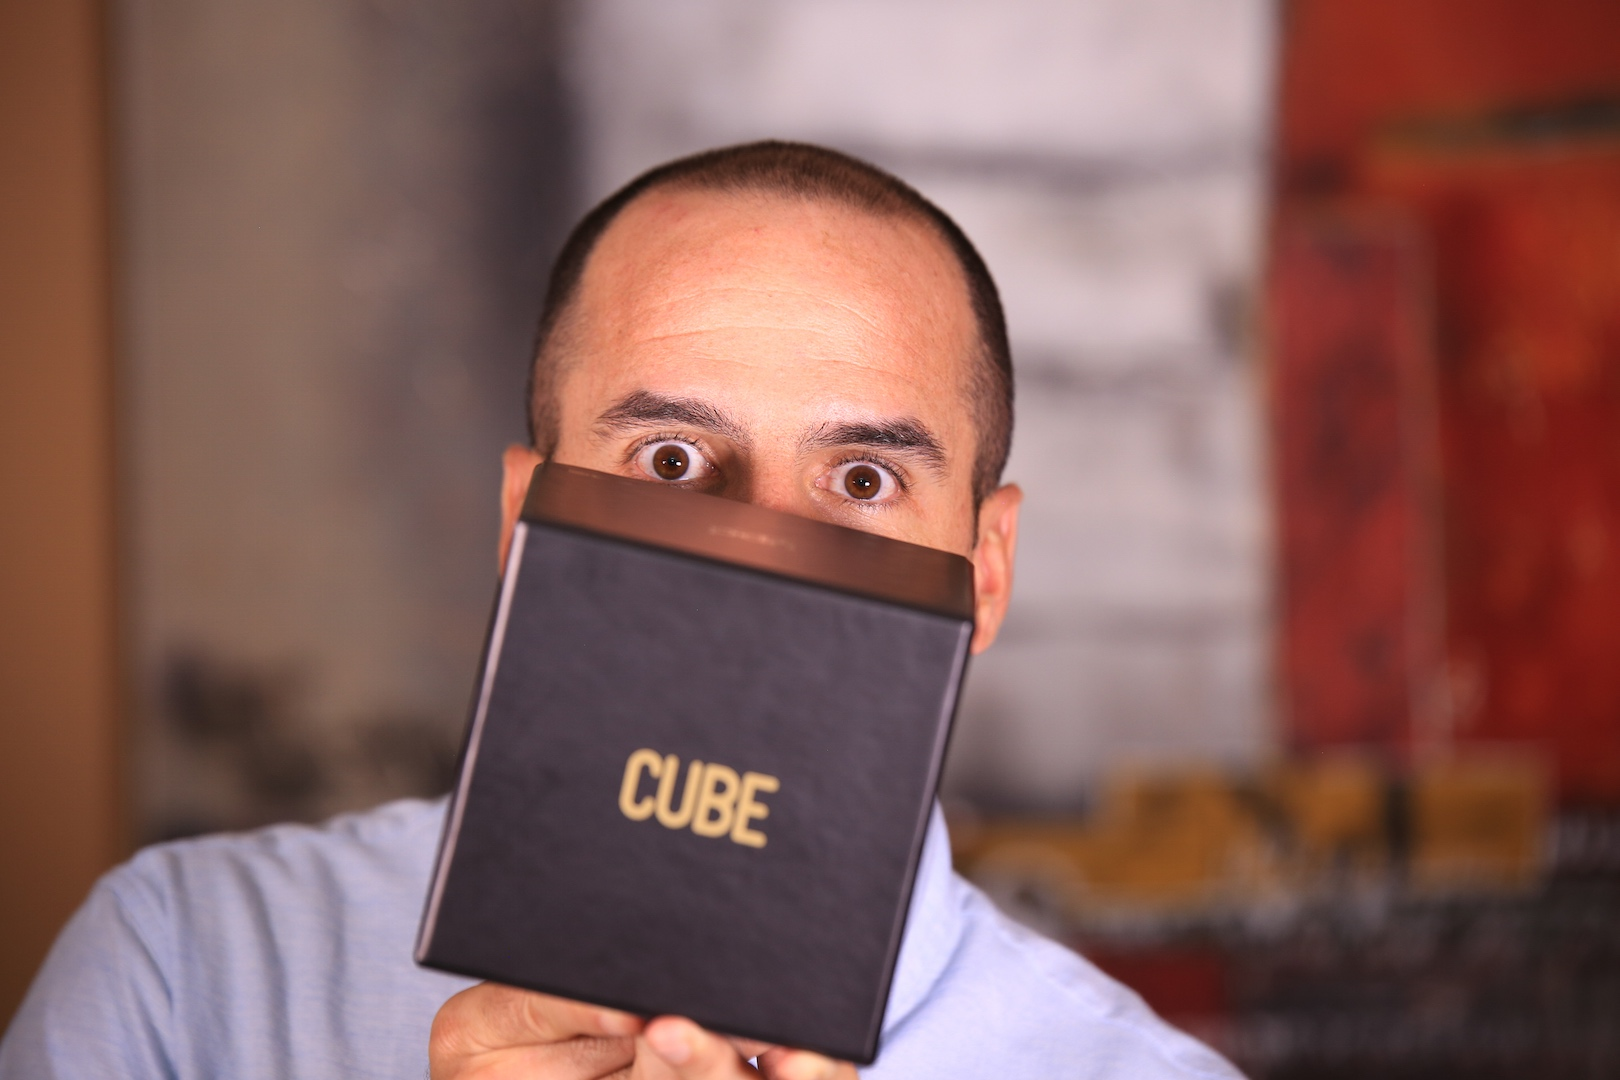 Are you ready for the CUBE?